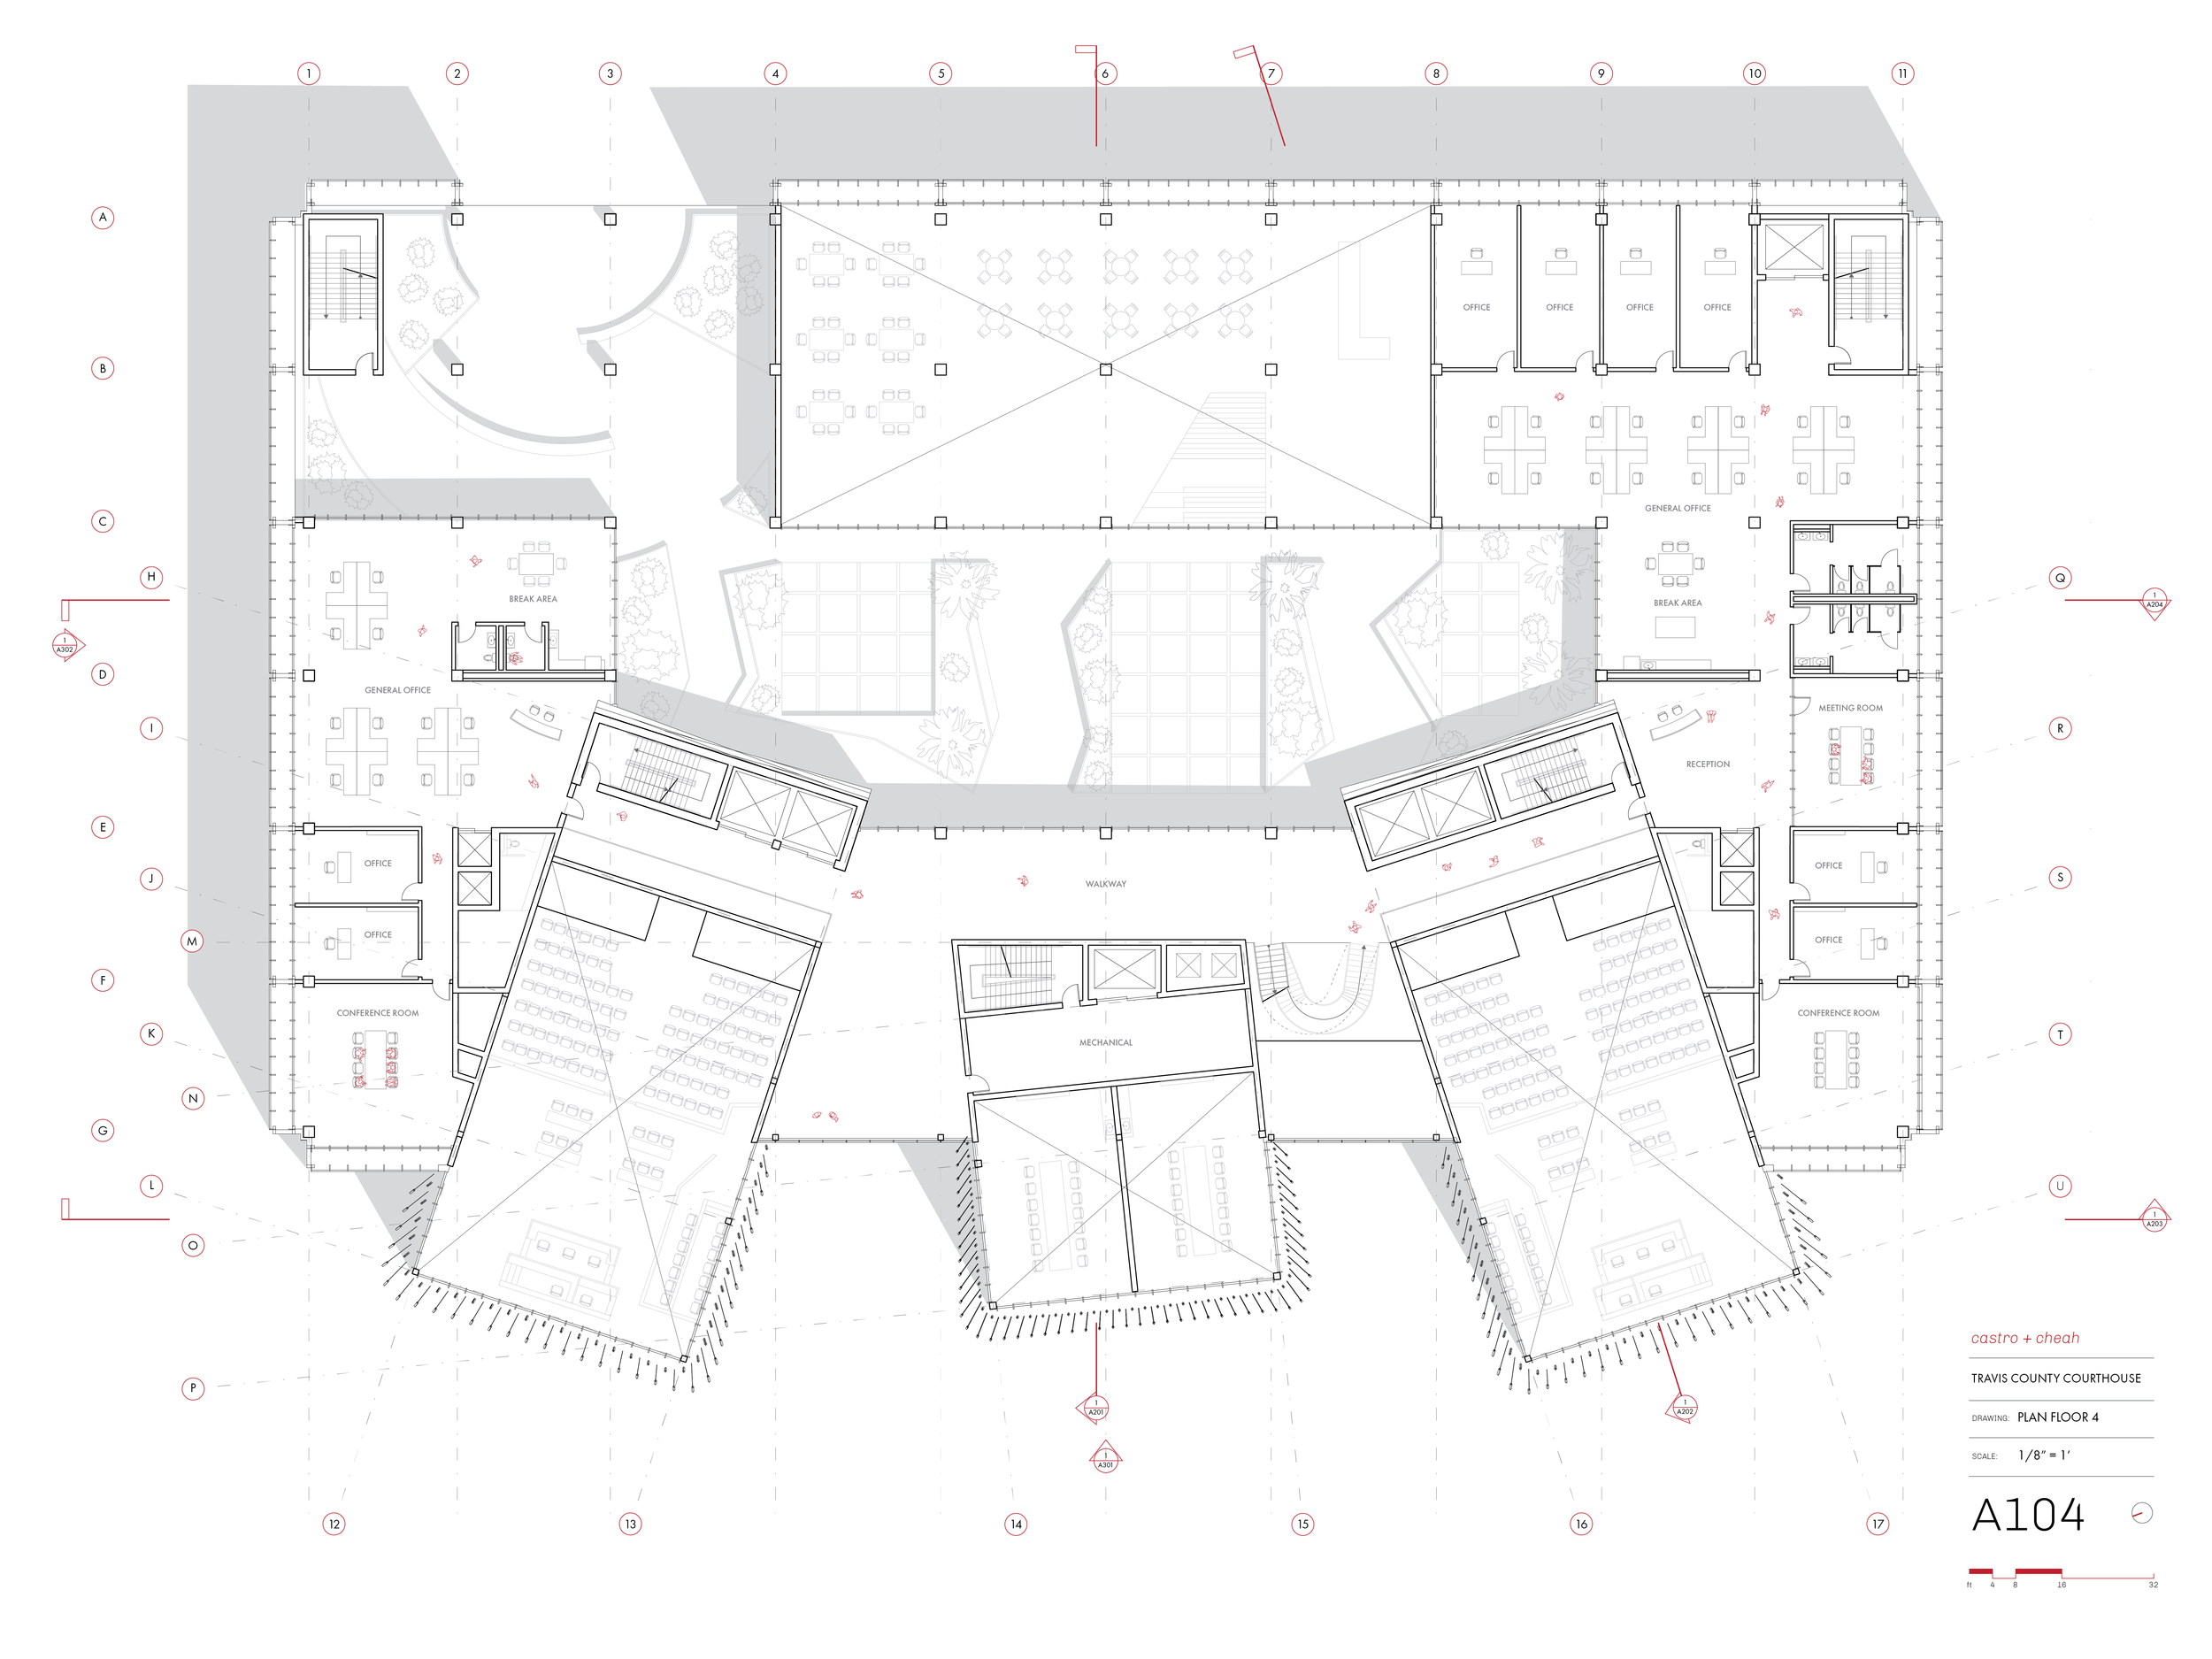 A104_FloorPlan04-01.png